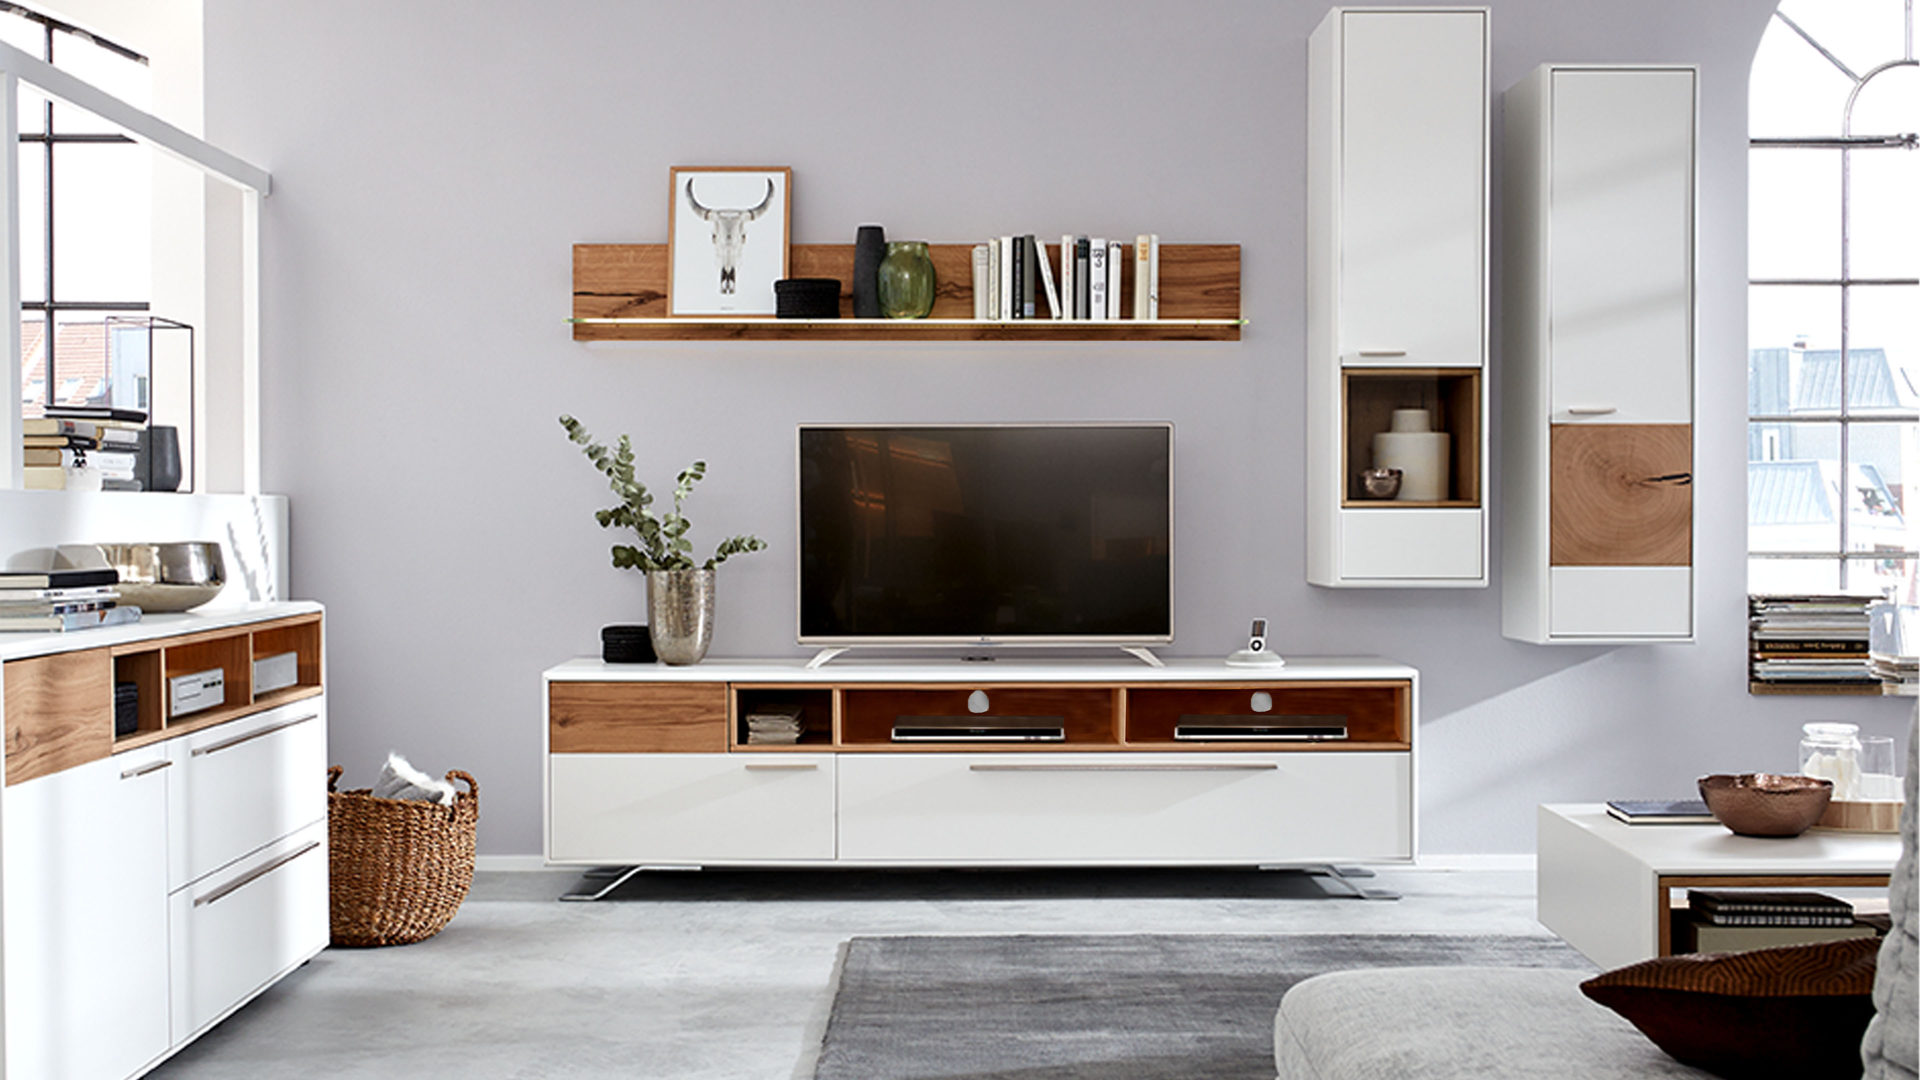 Tv Sideboard Raumteiler Möbel Böck Möbel A Z Regale Raumteiler Interliving